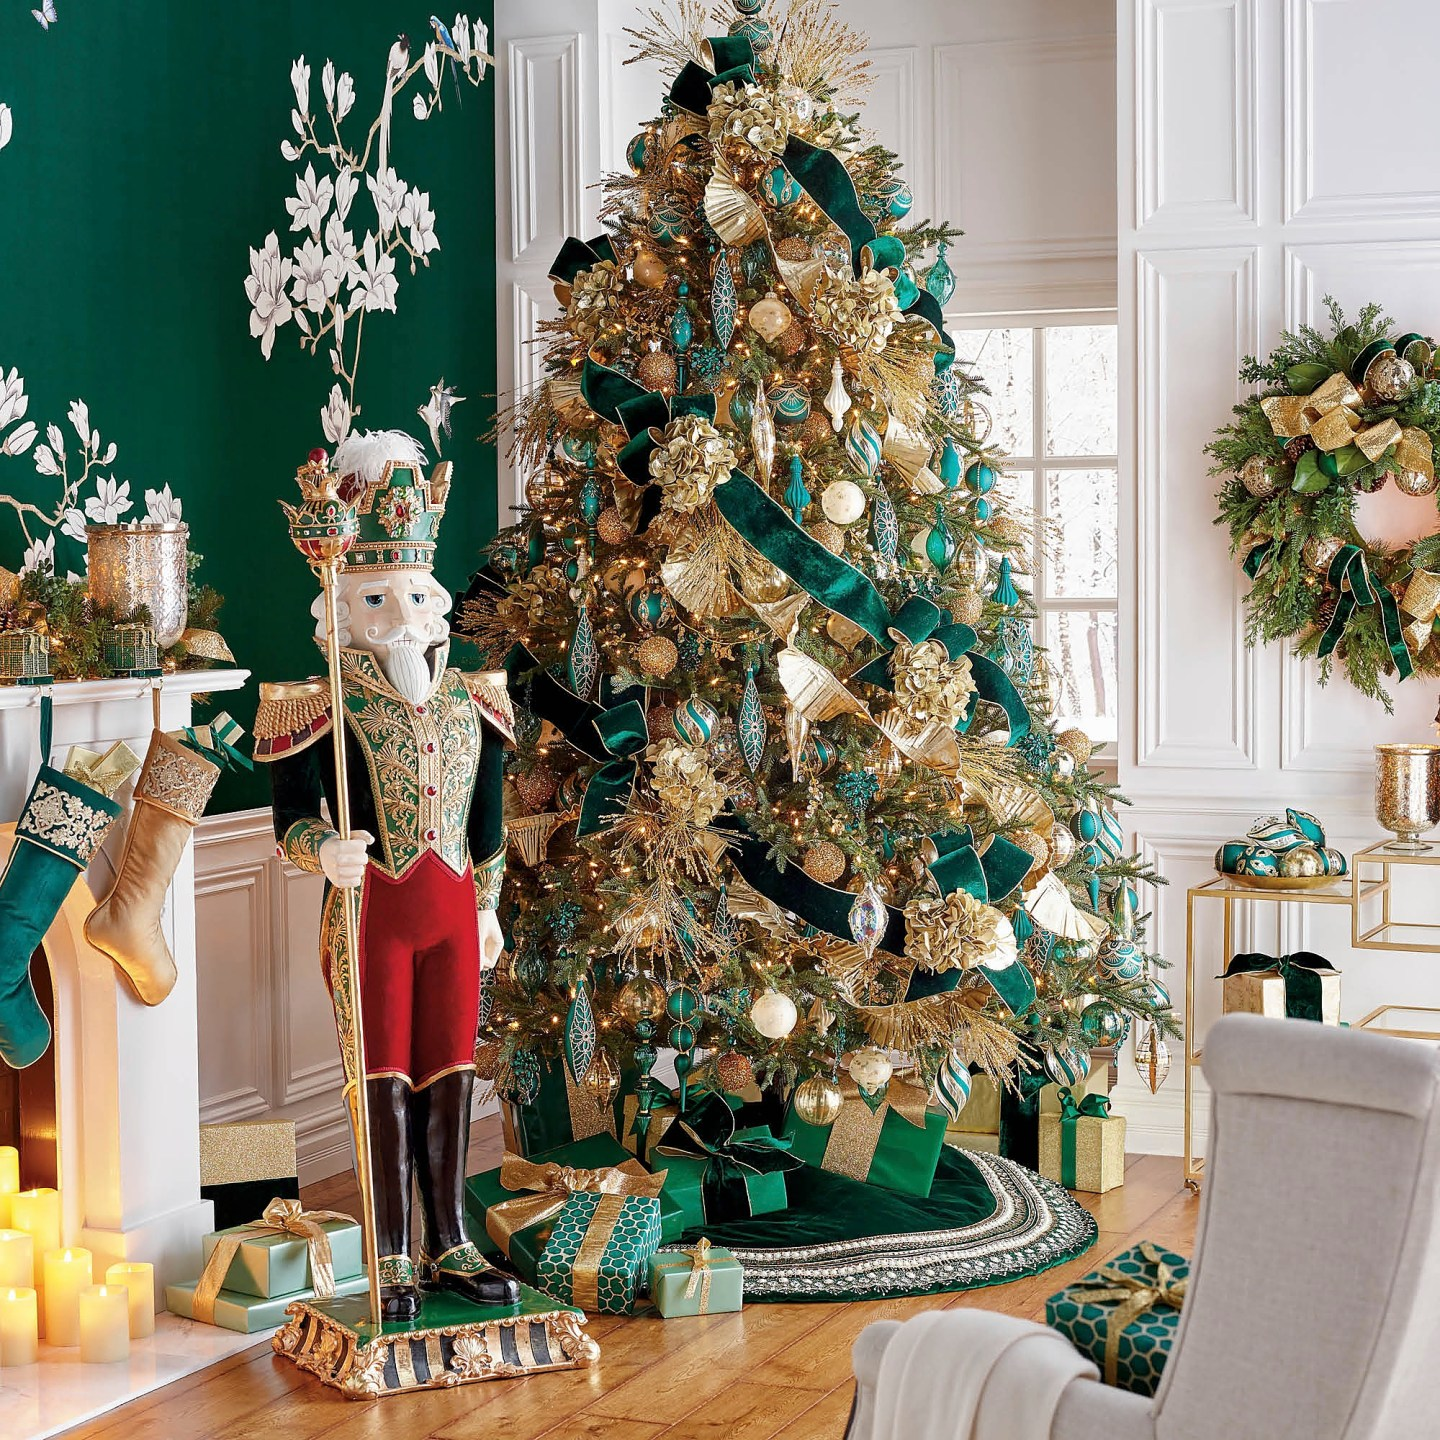 Cumberland-1 Green and Gold Holiday Decor We Love!